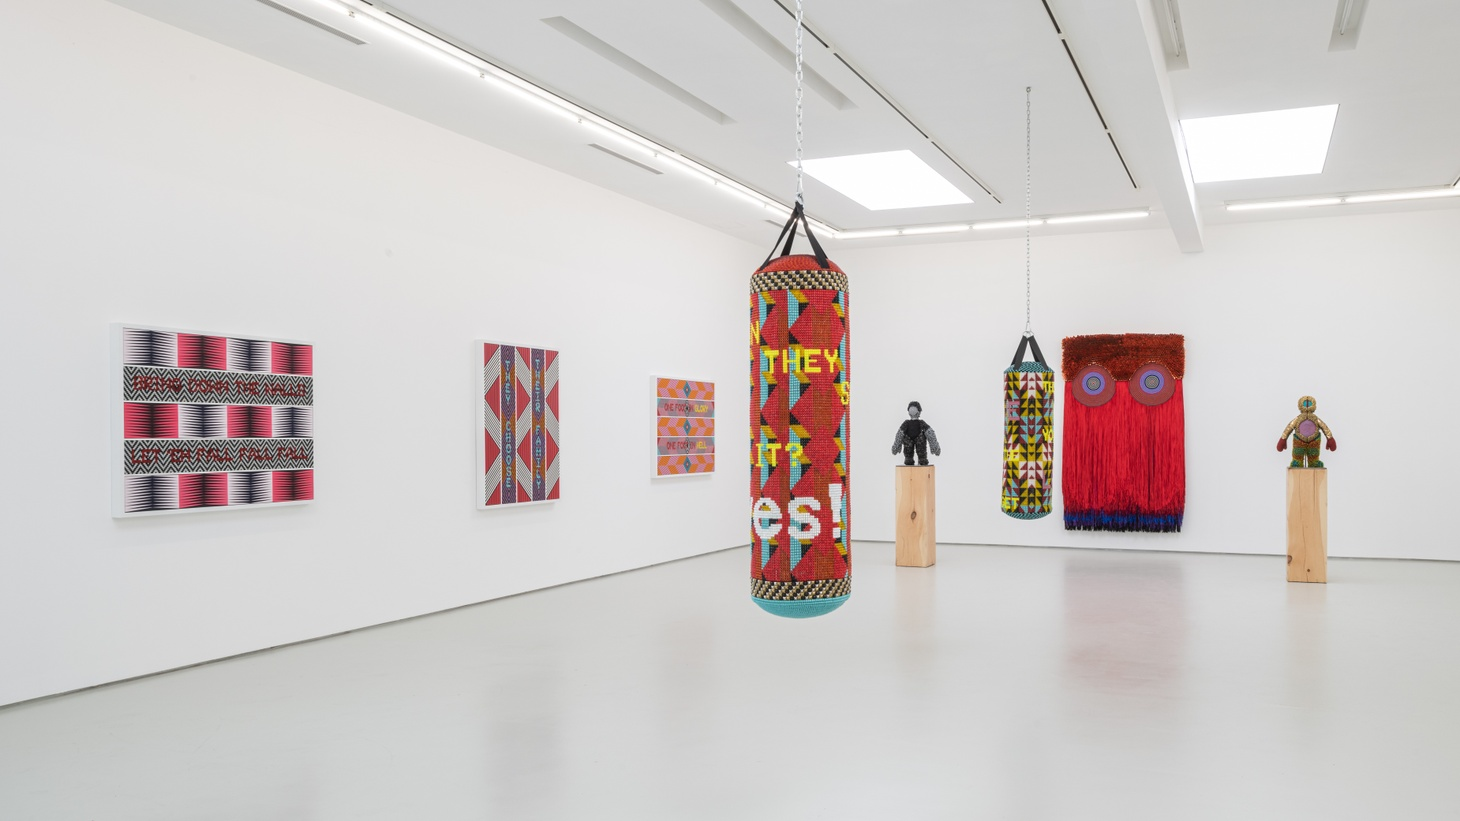 """Jeffrey Gibson, """"It Can Be Said of Them,"""" Installation View. Image courtesy of the artist and Roberts Projects, Los Angeles, California."""